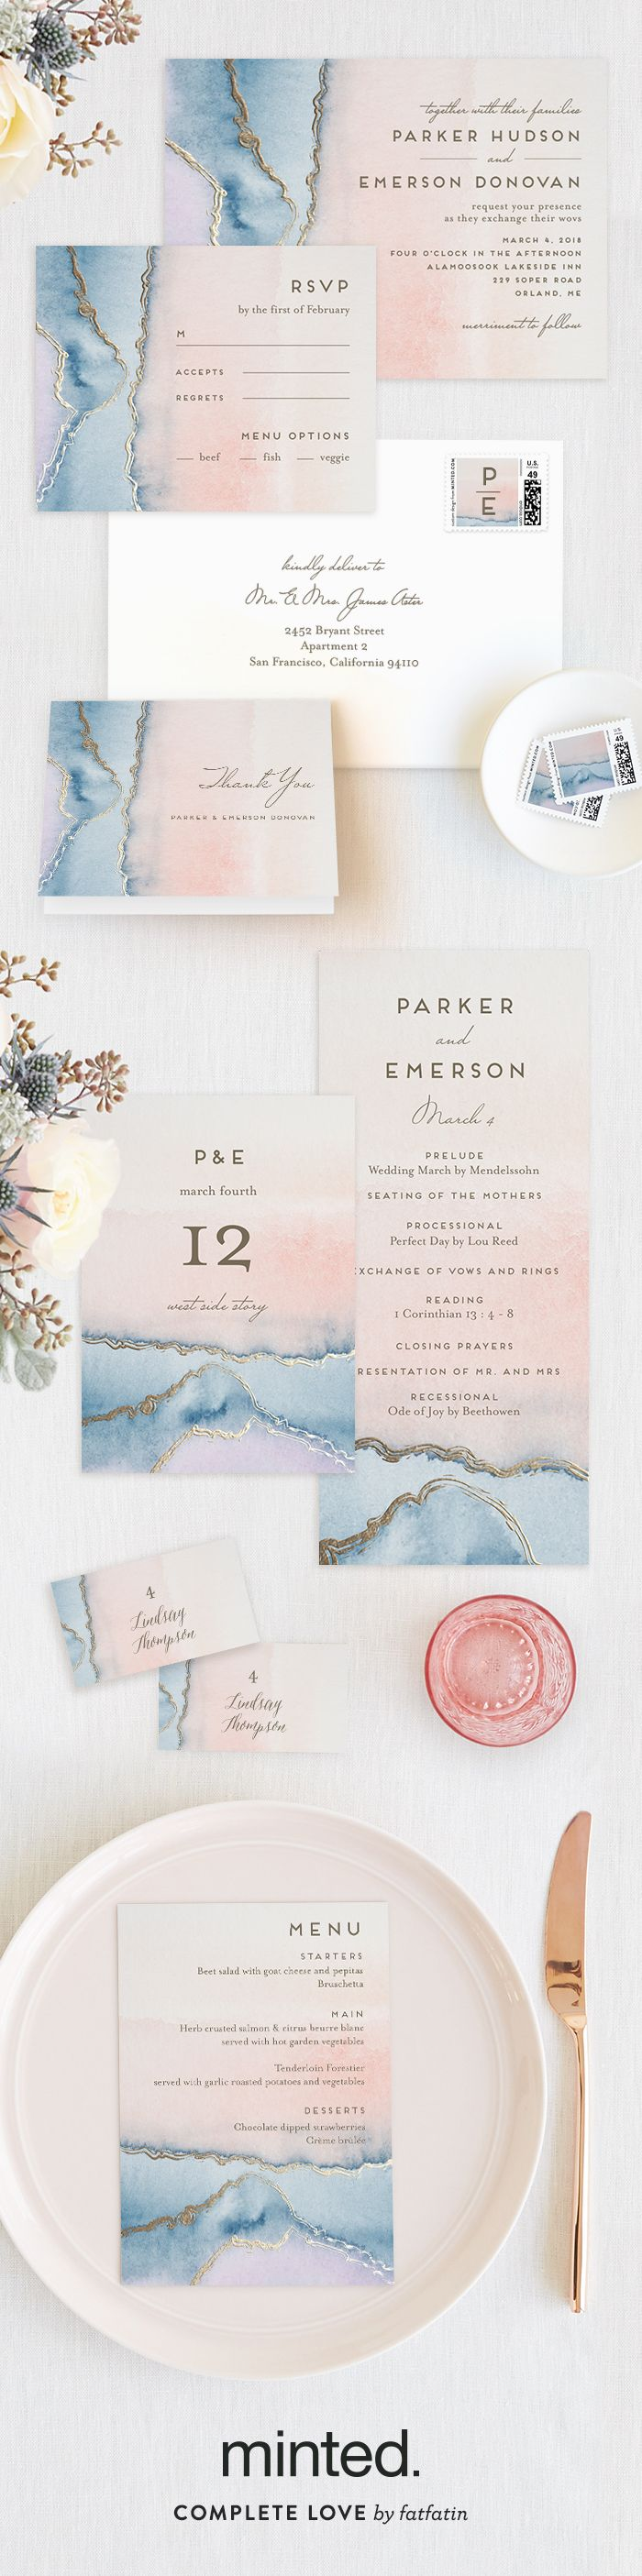 invitation wording for networking event%0A Go dreamy with a pastel perfect Agate on your wedding day  like this Simple  Agate wedding invitation design by Minted artists Petra Kern